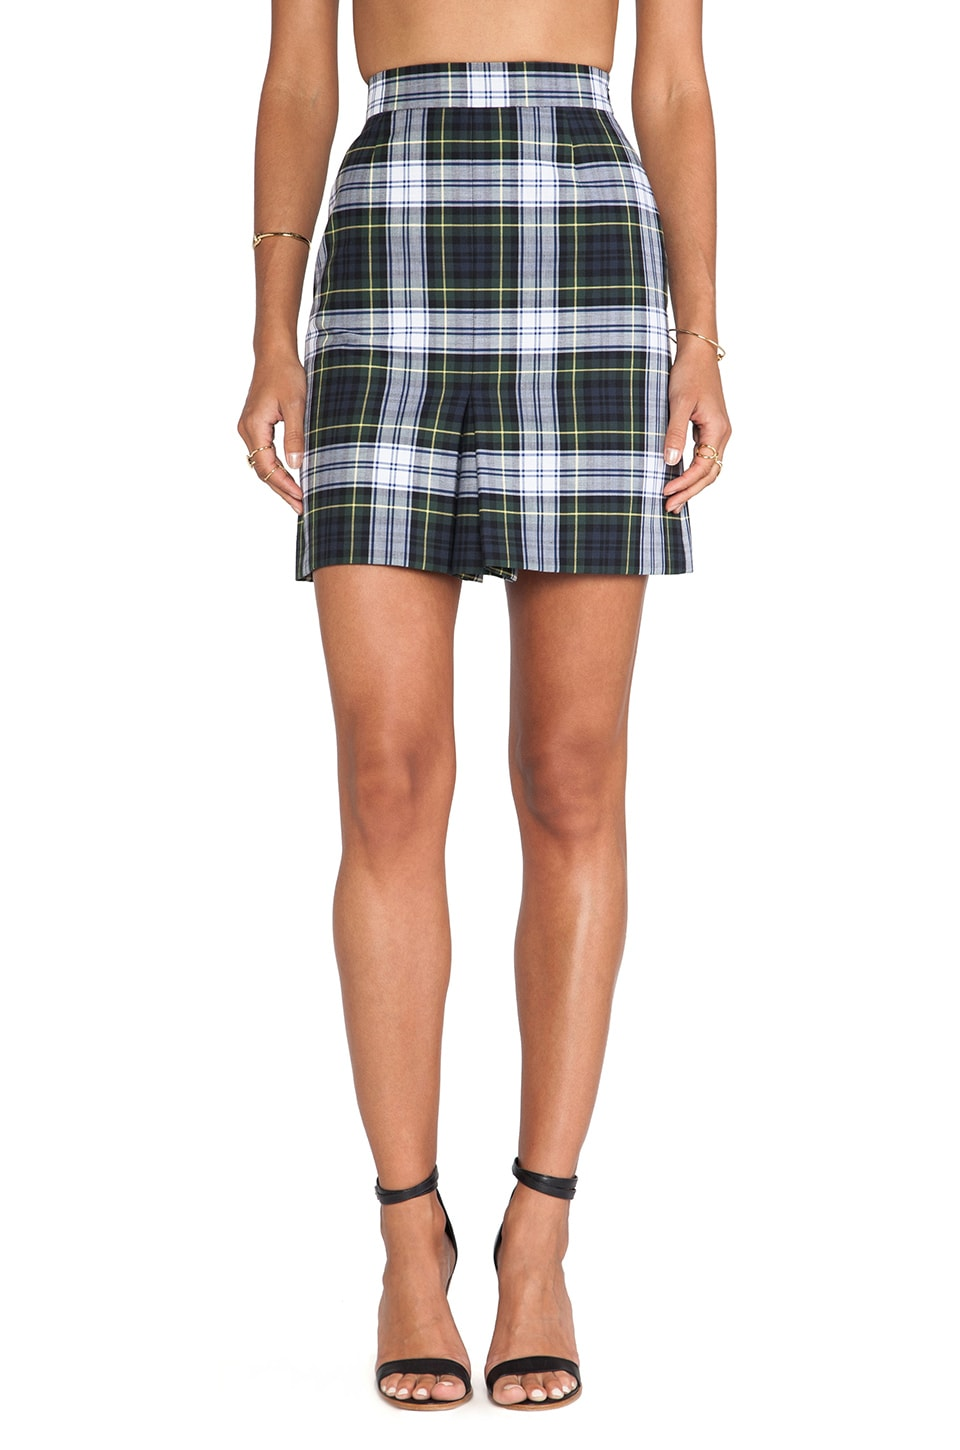 McQ Alexander McQueen Mini Pleat Skirt in Rupert